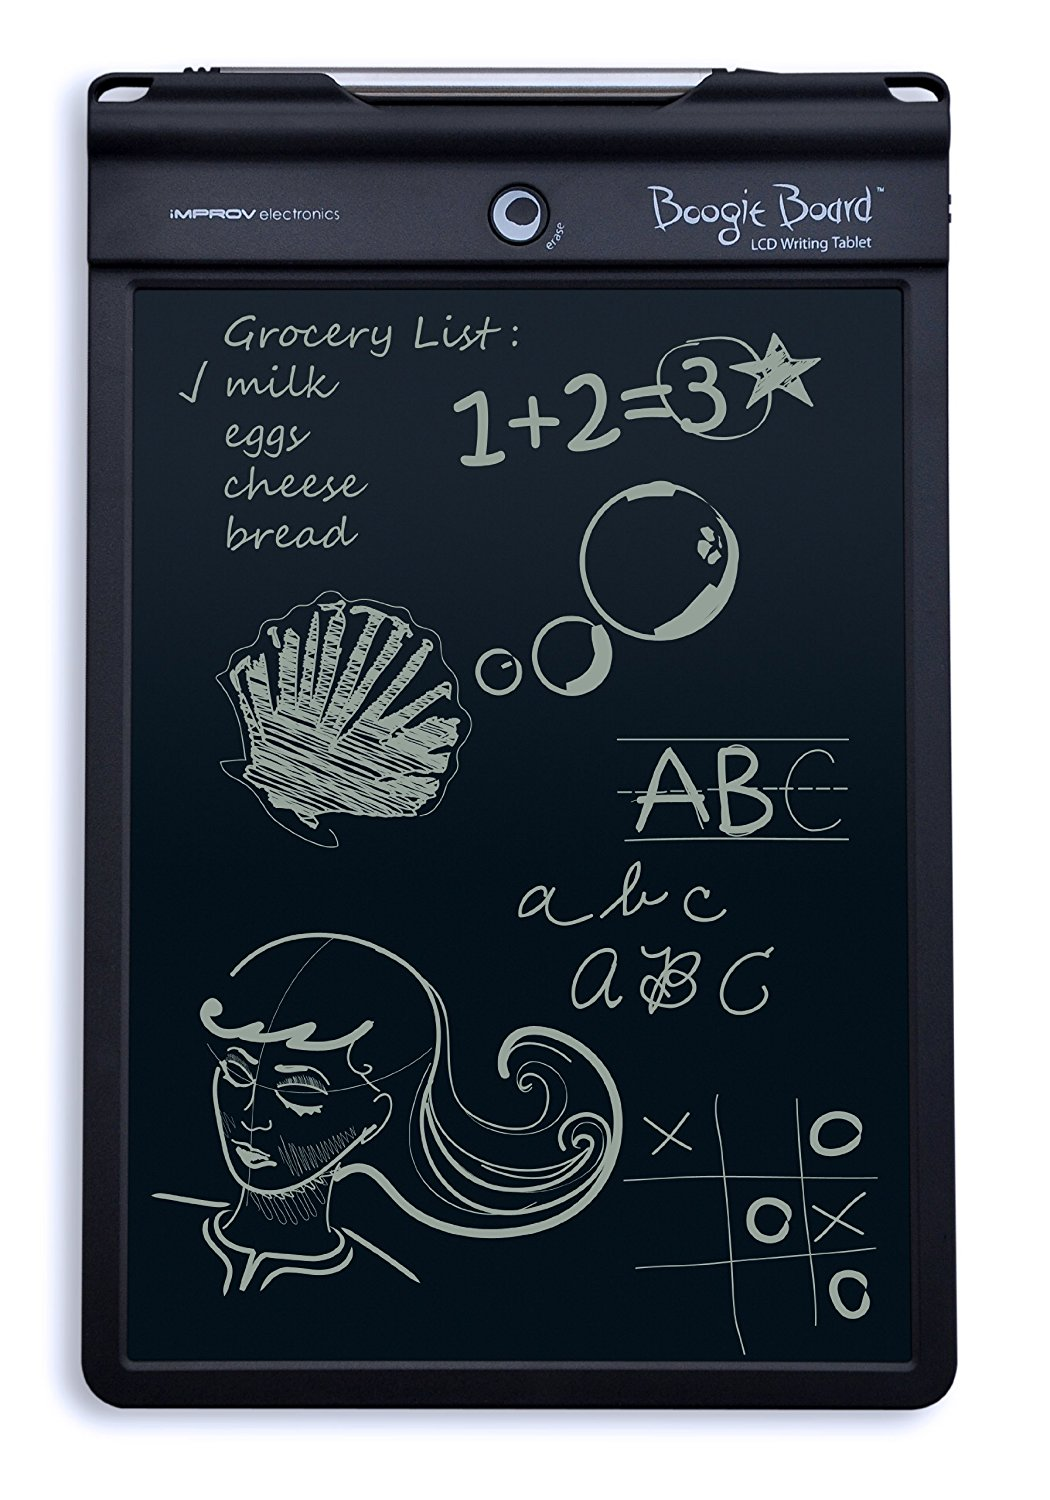 Get the best Boogie Board Black Friday and Cyber Monday deals here